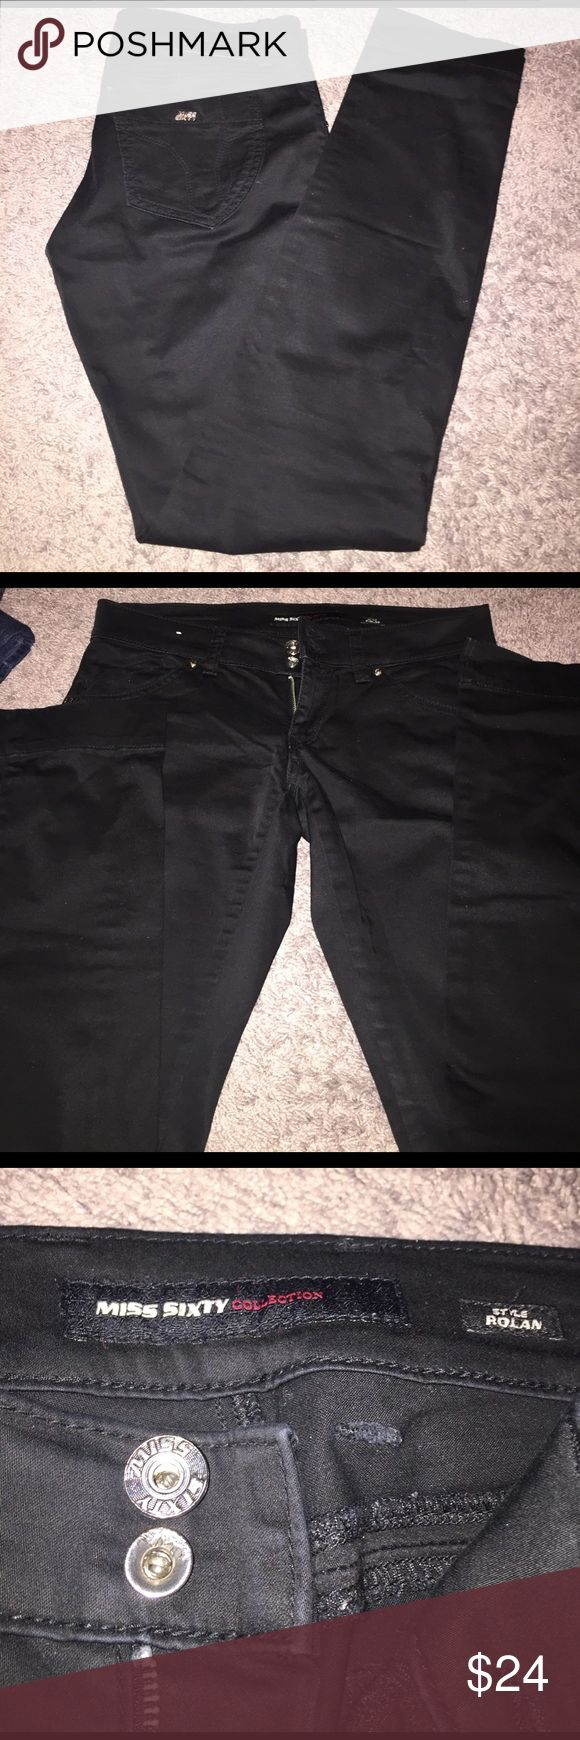 Miss Sixty Black Jeans Used but perfect condition. Do not fit me anymore Miss Sixty Jeans